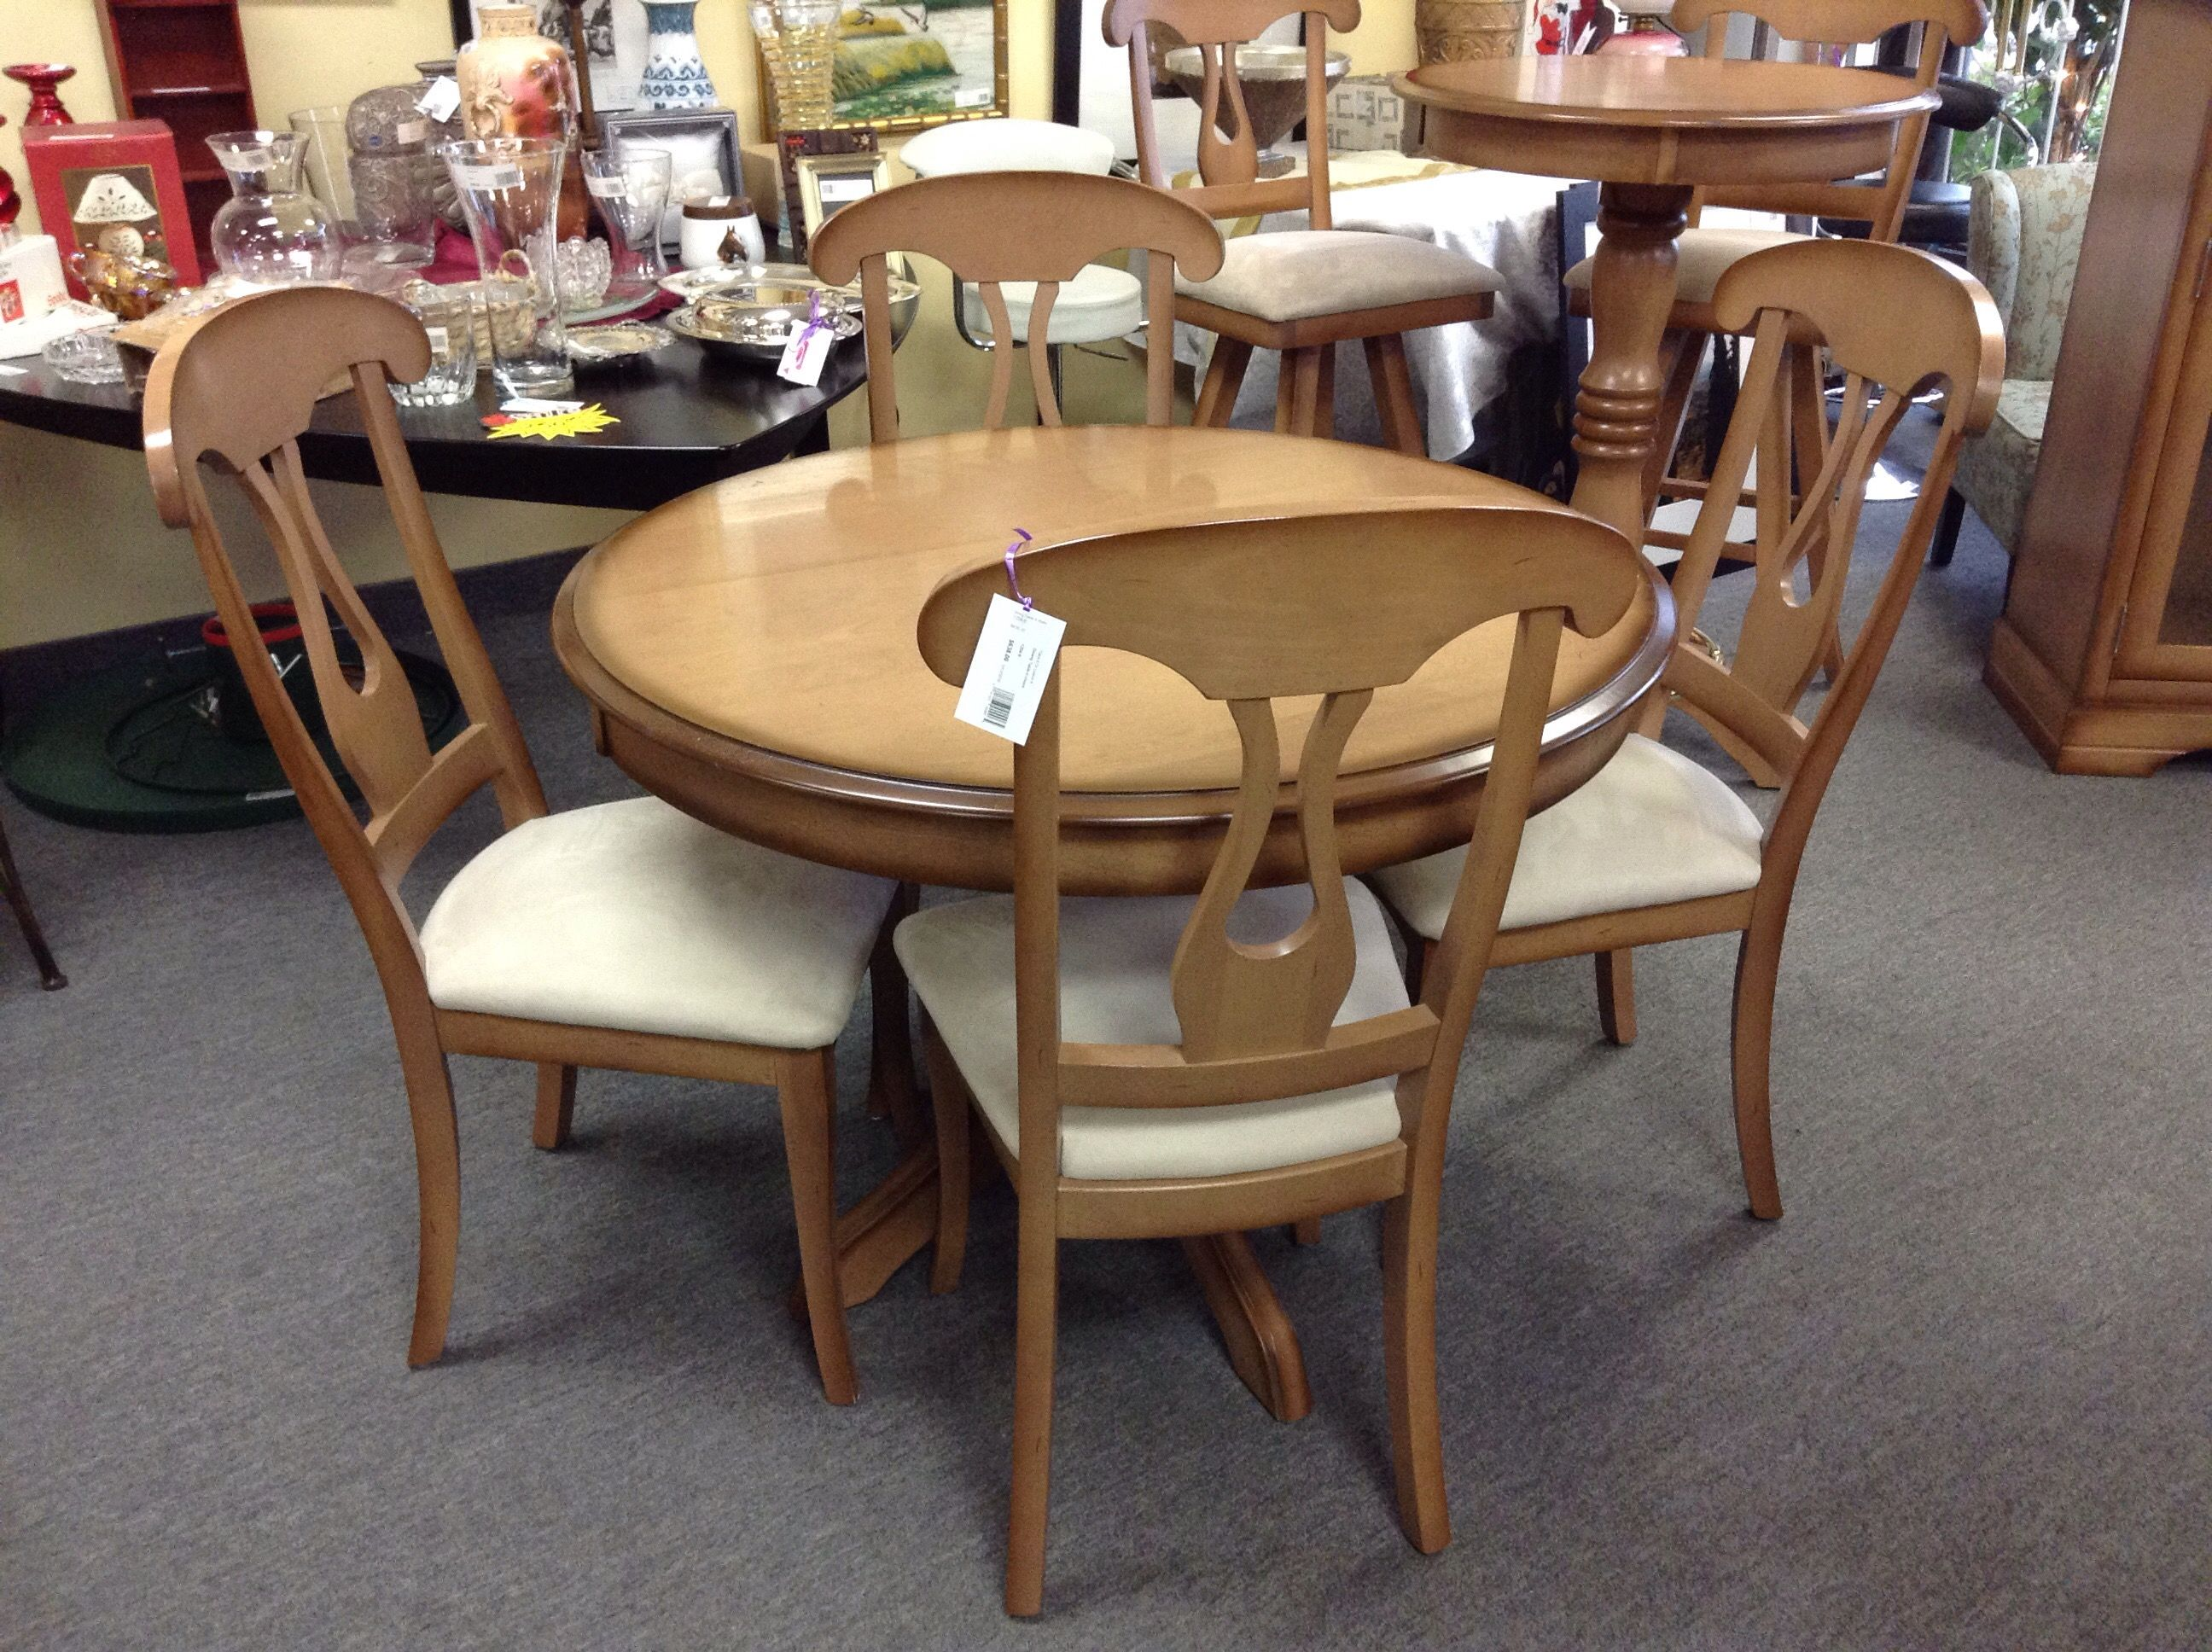 Round Dining Table Includes 4 Chairs 42 Inch Diameter With Pedestal Base Item